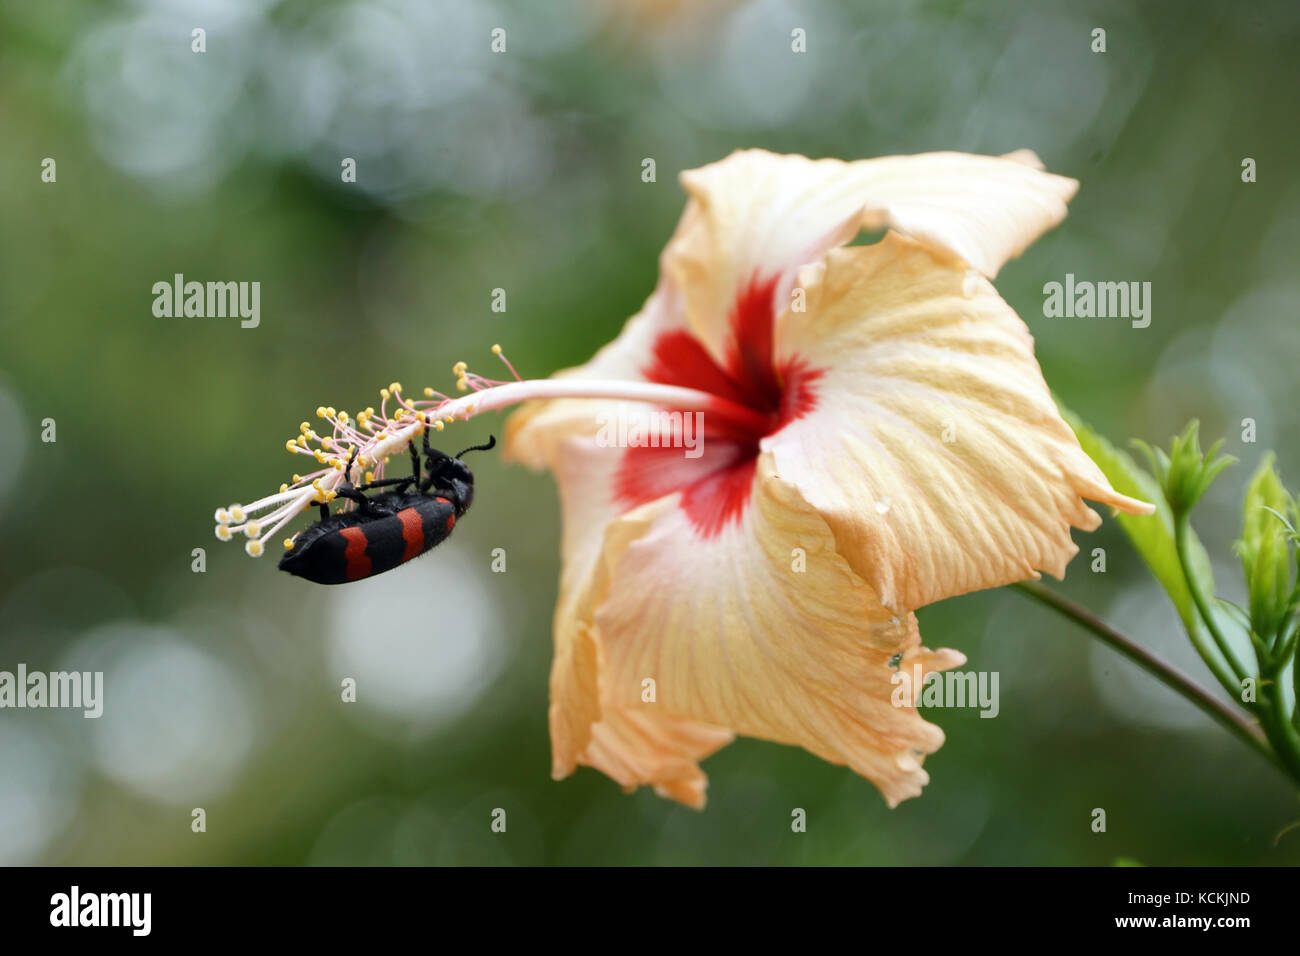 A Black And Red Beetle For Eating Petals Of The Hibiscus Flower